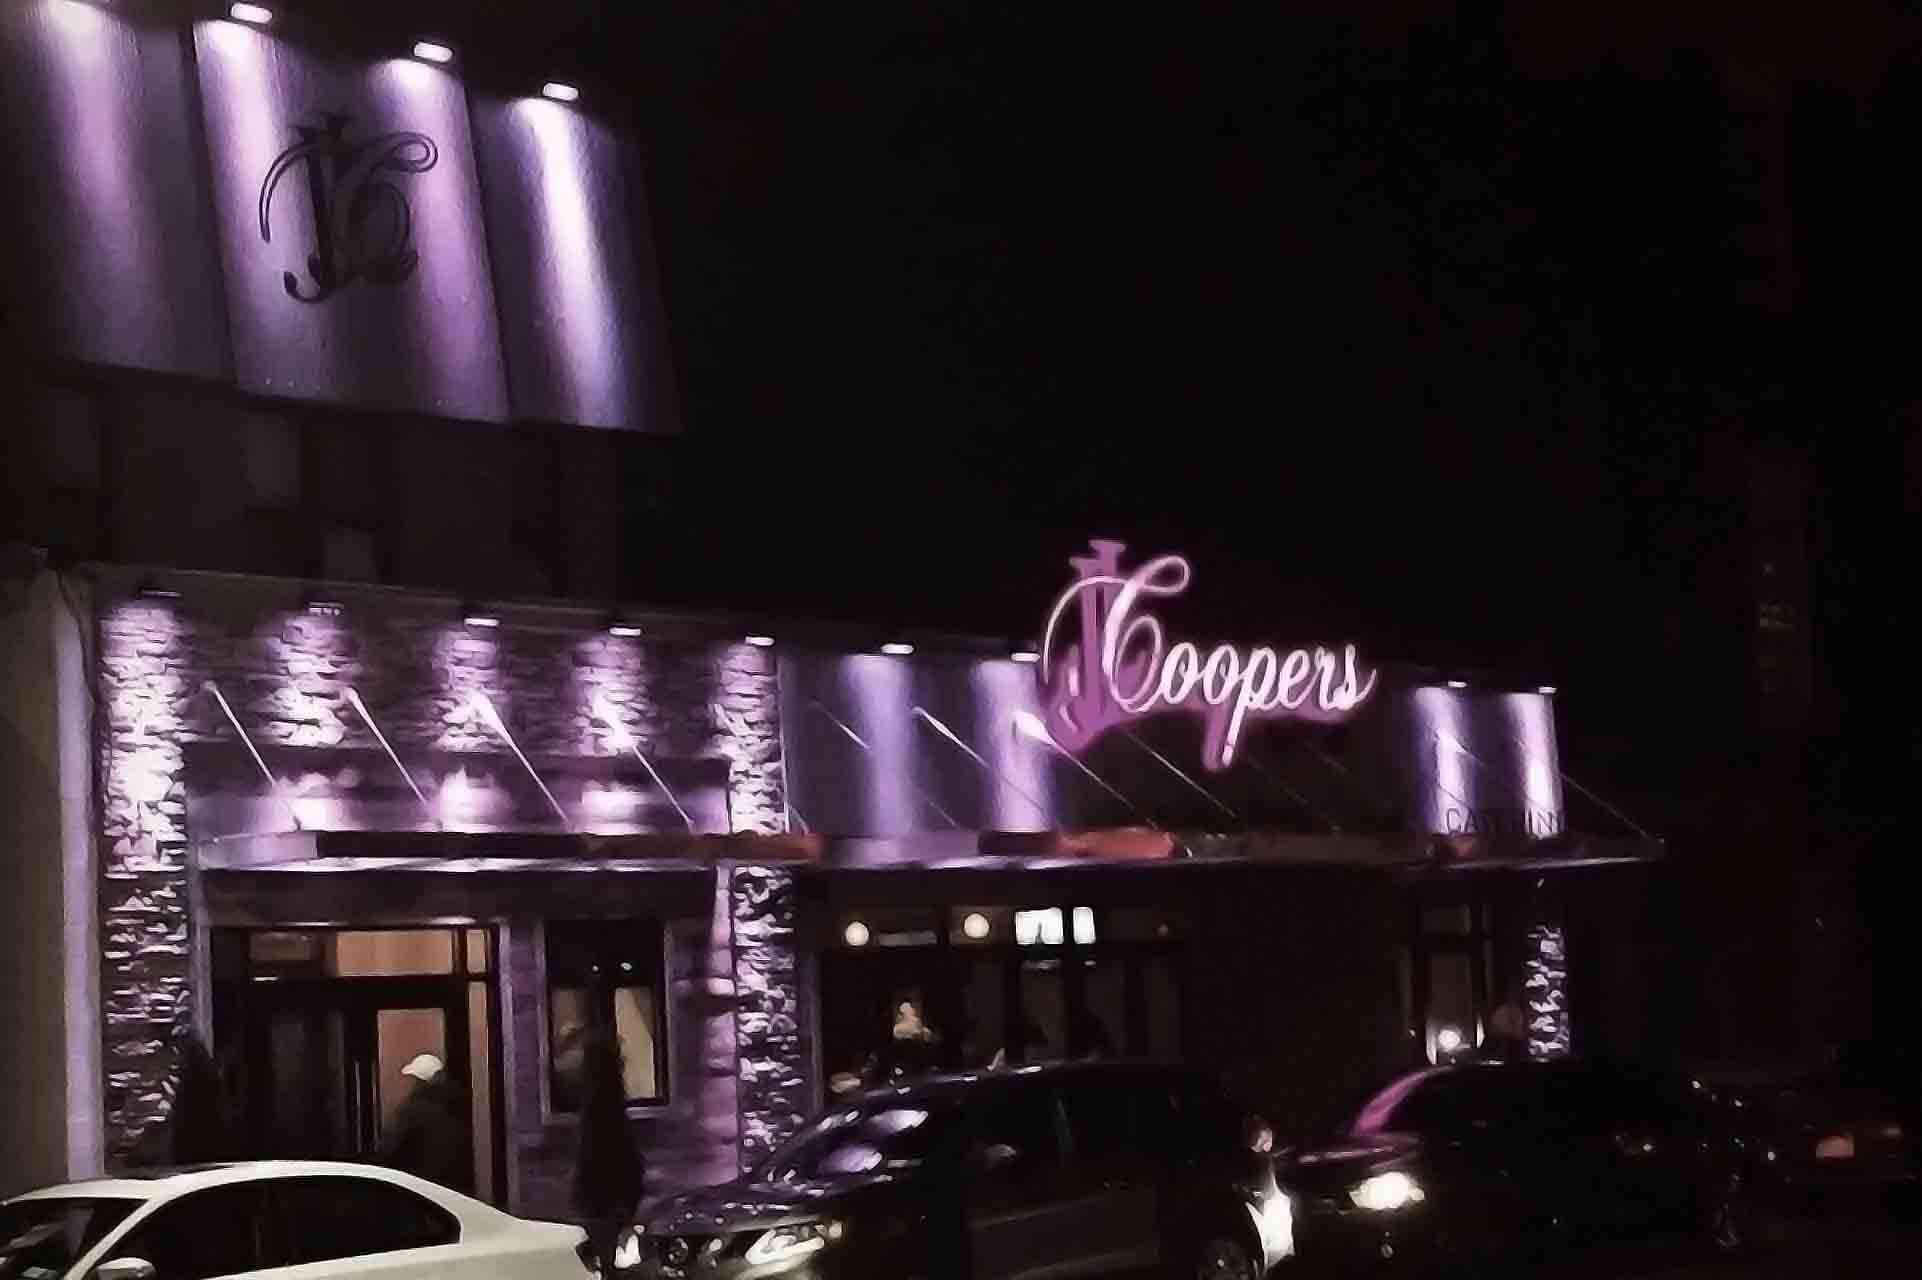 jj-coopers-restaurant-dining-bar-catering-long-beach-ny-night